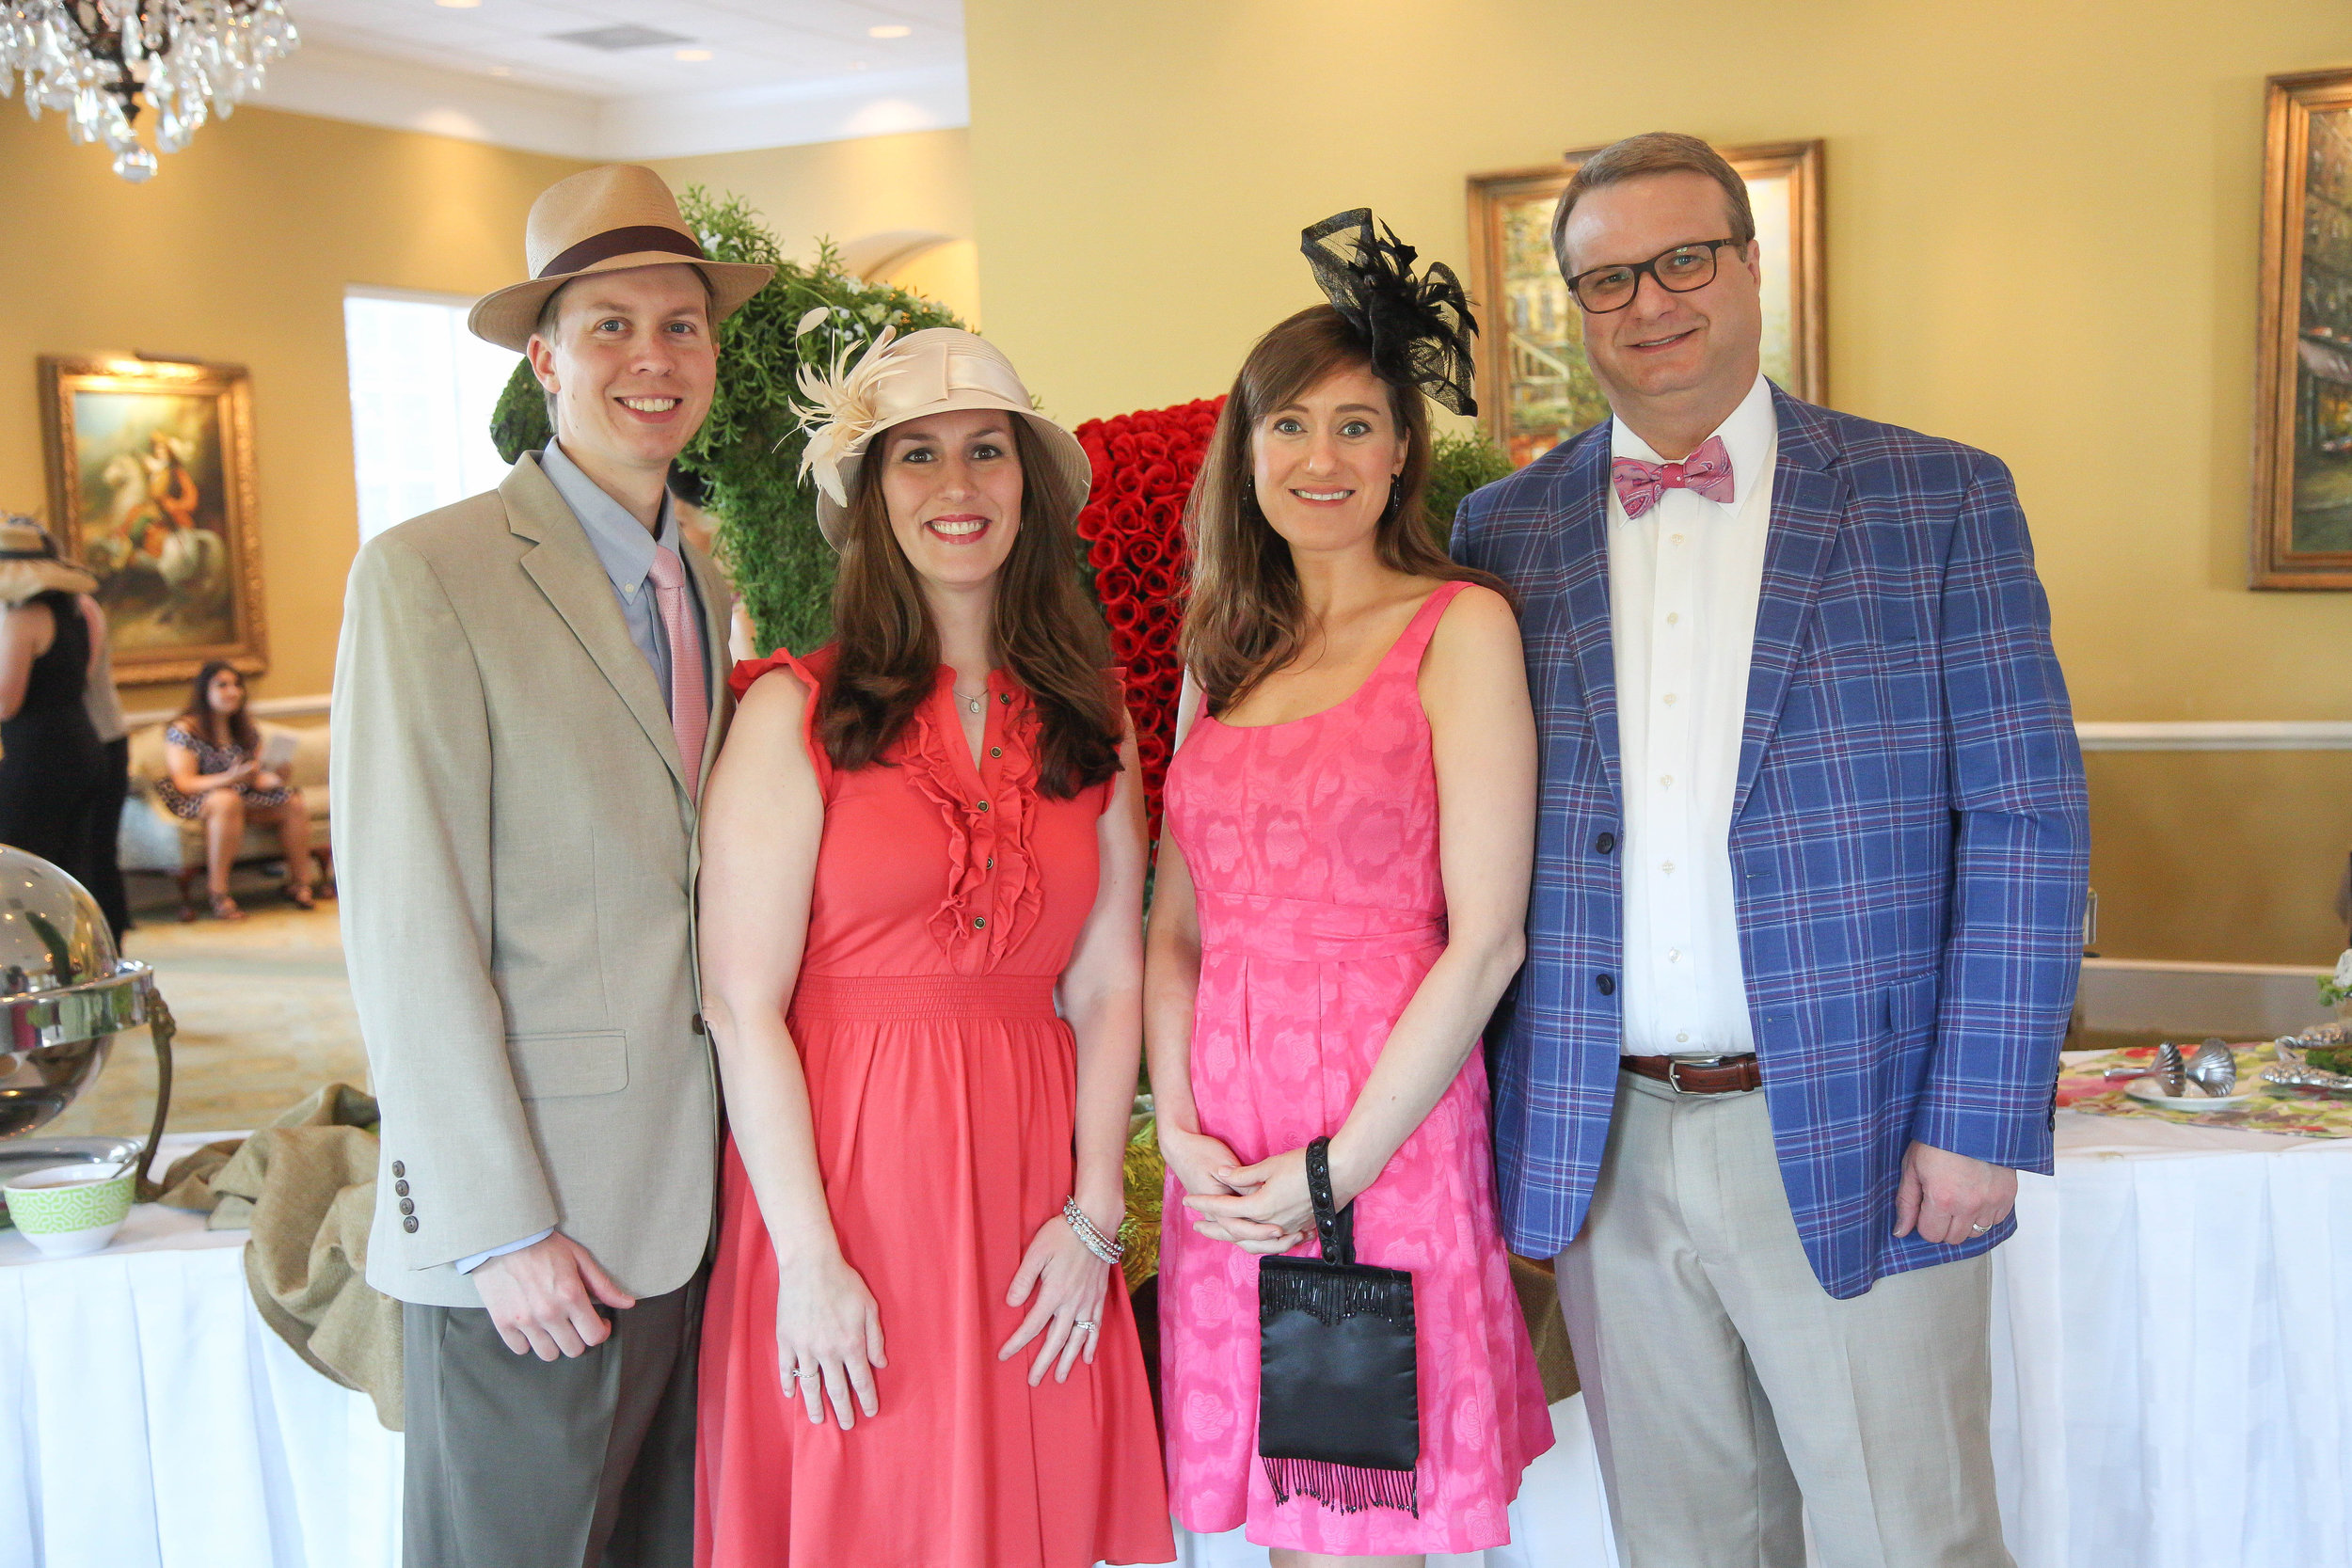 Robert and Katrina McGinnis with Angela and Andrew Clark